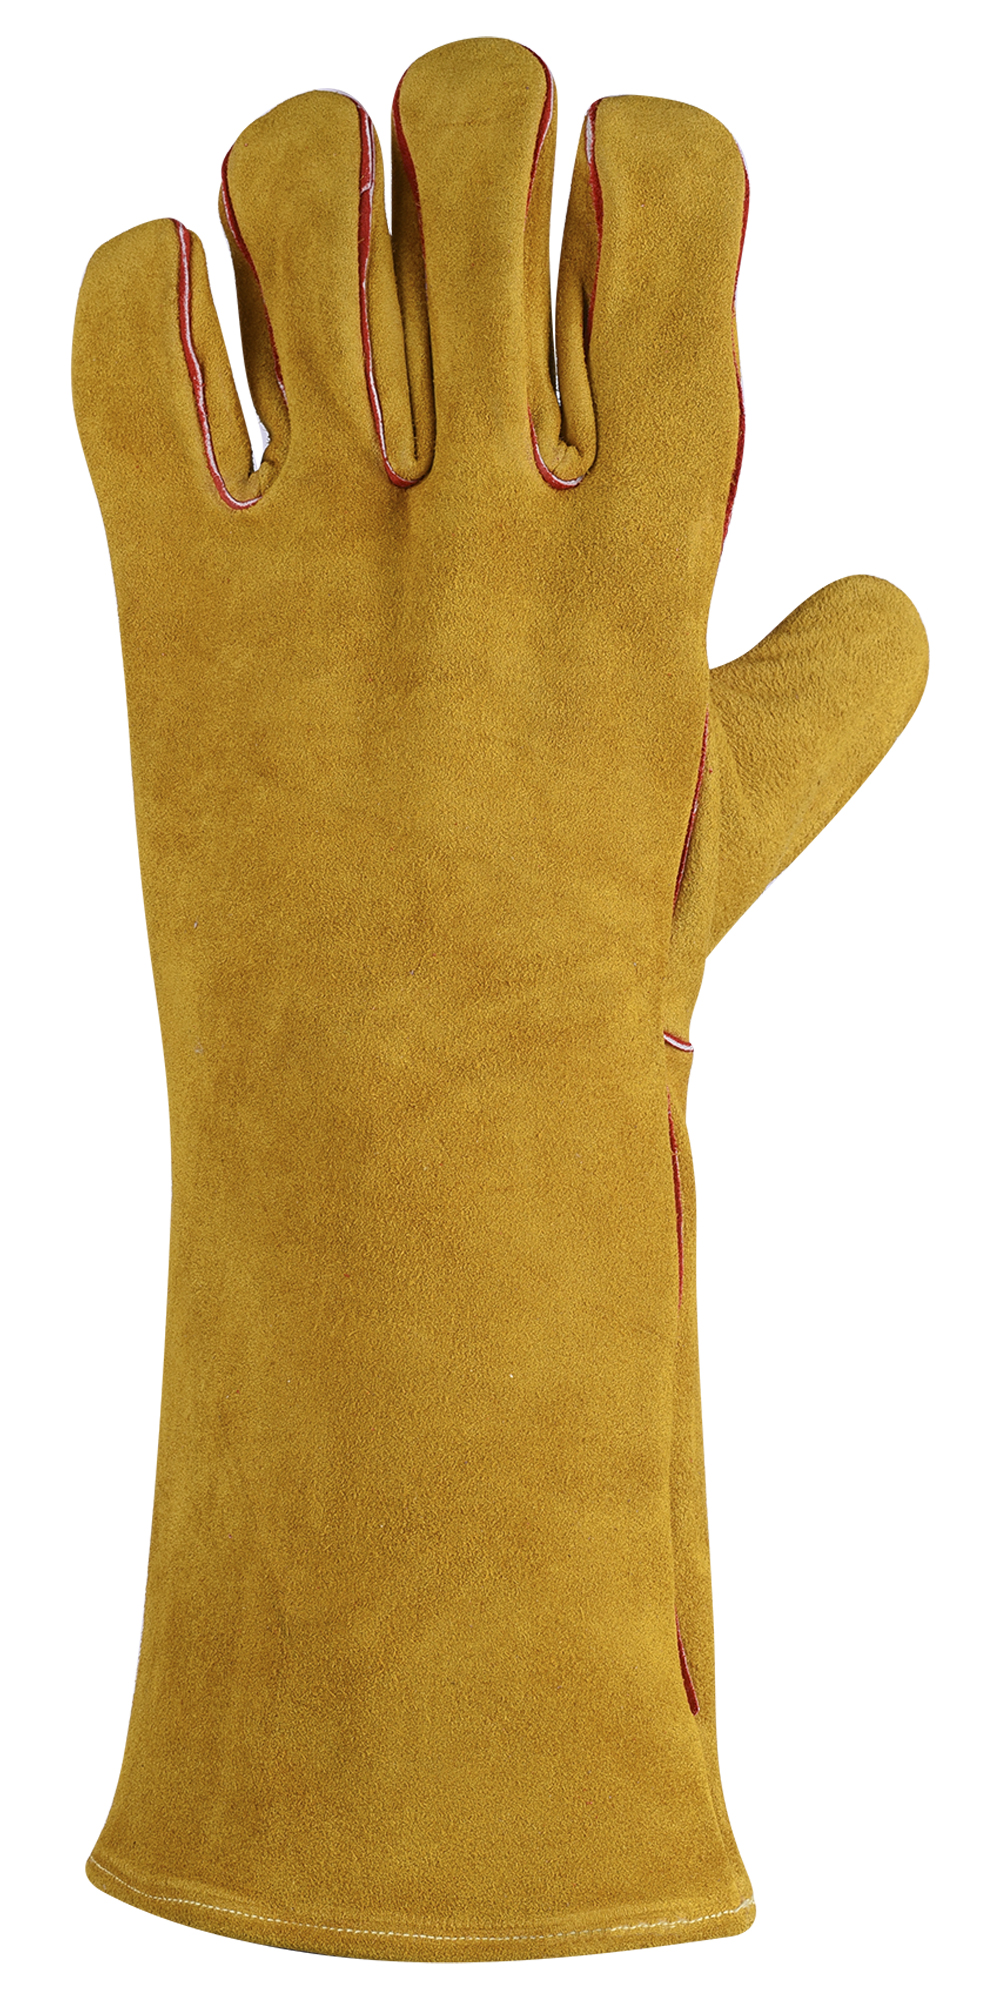 thick welding gloves